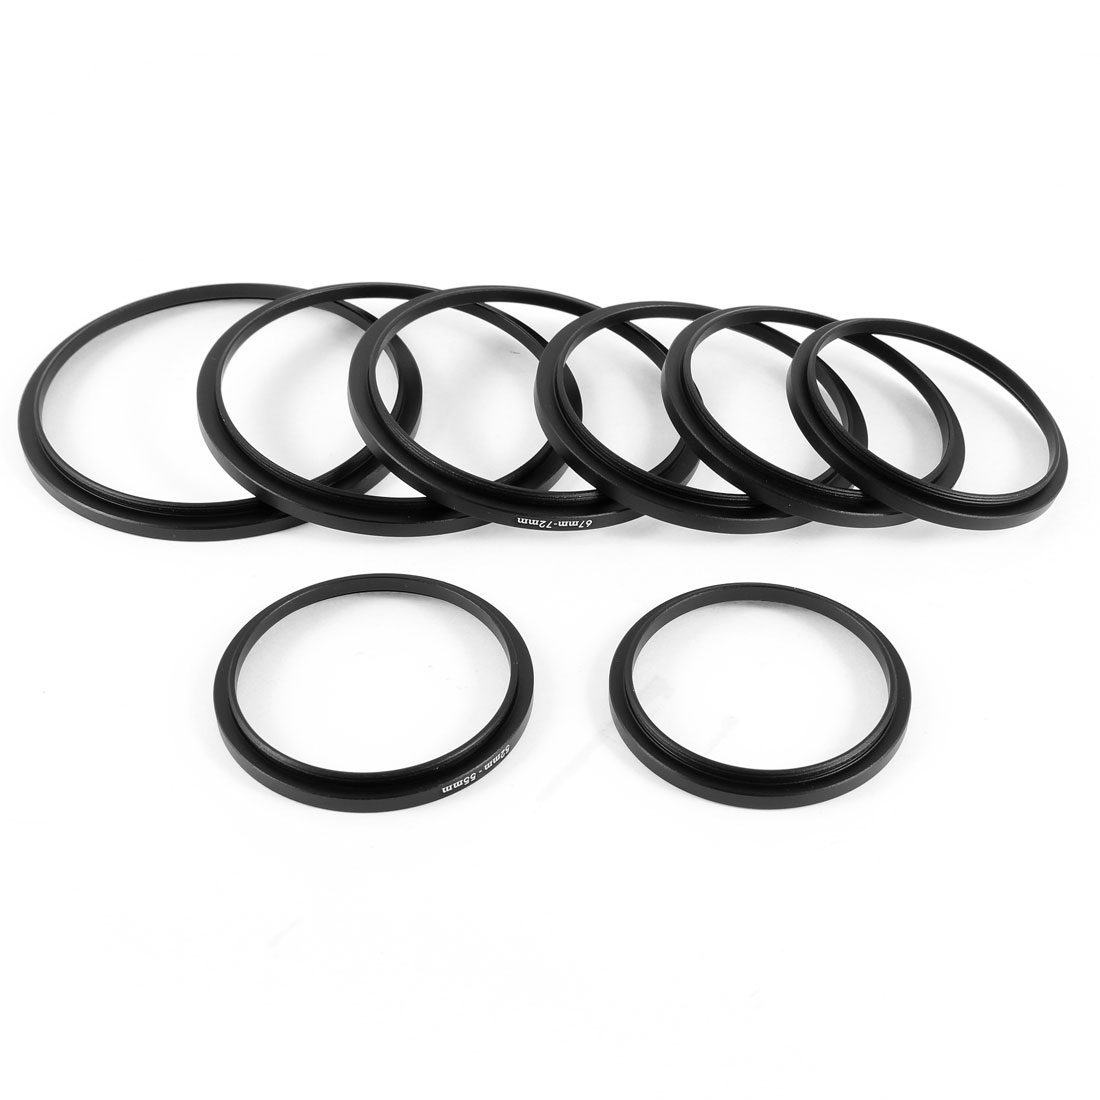 Unique Bargains 8 in 1 Camera Lens Filter Step Up Ring Adapter for Canon Olympus